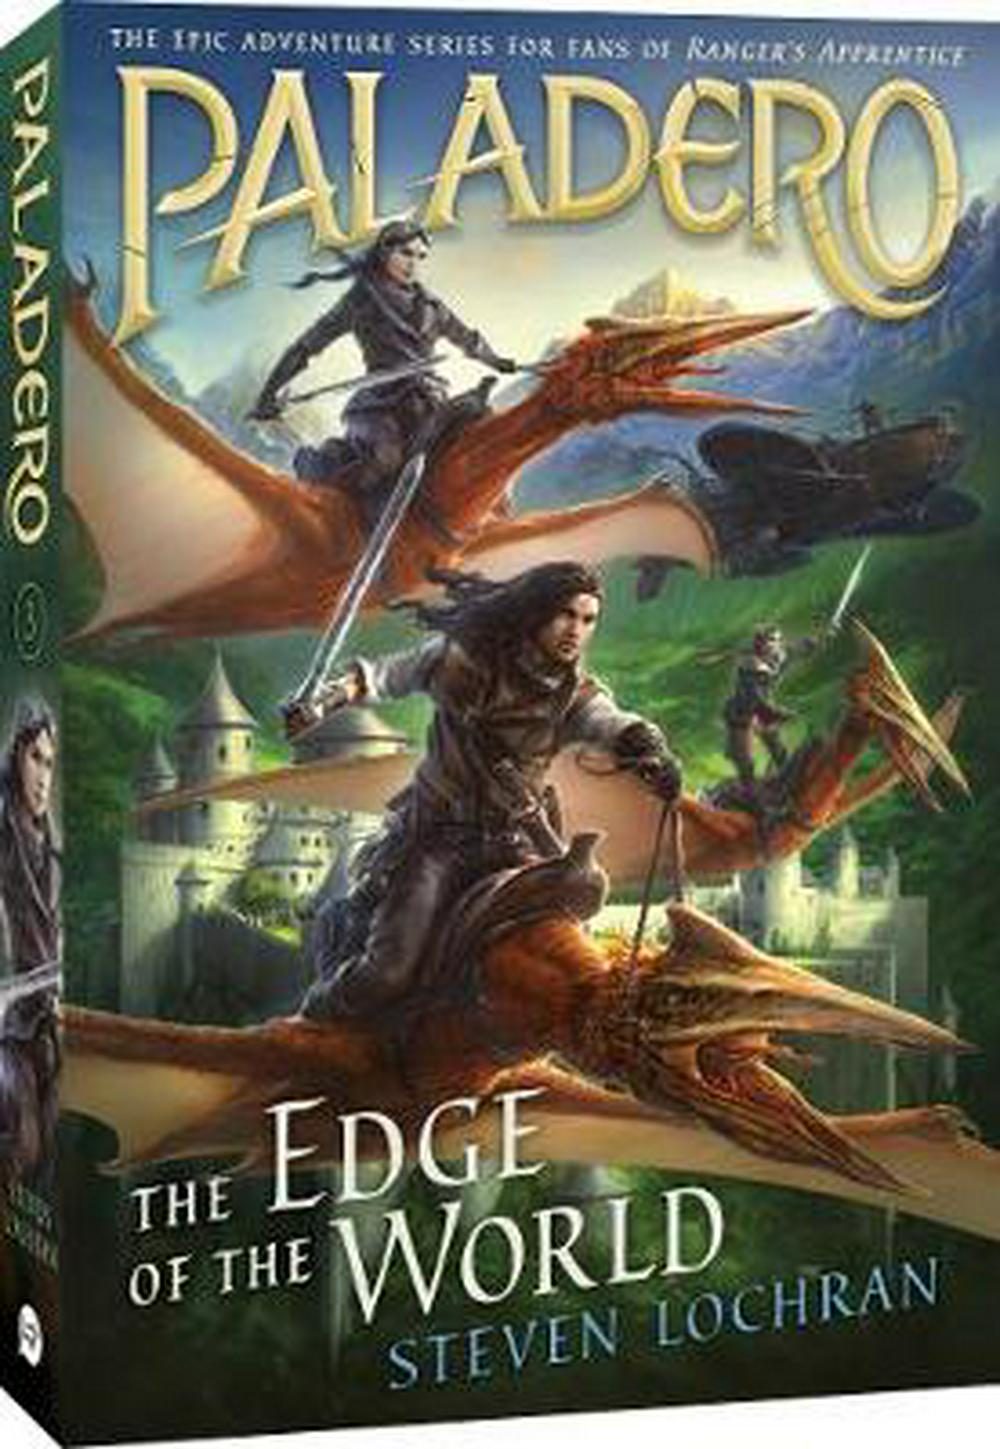 The Edge of the WorldPaladero